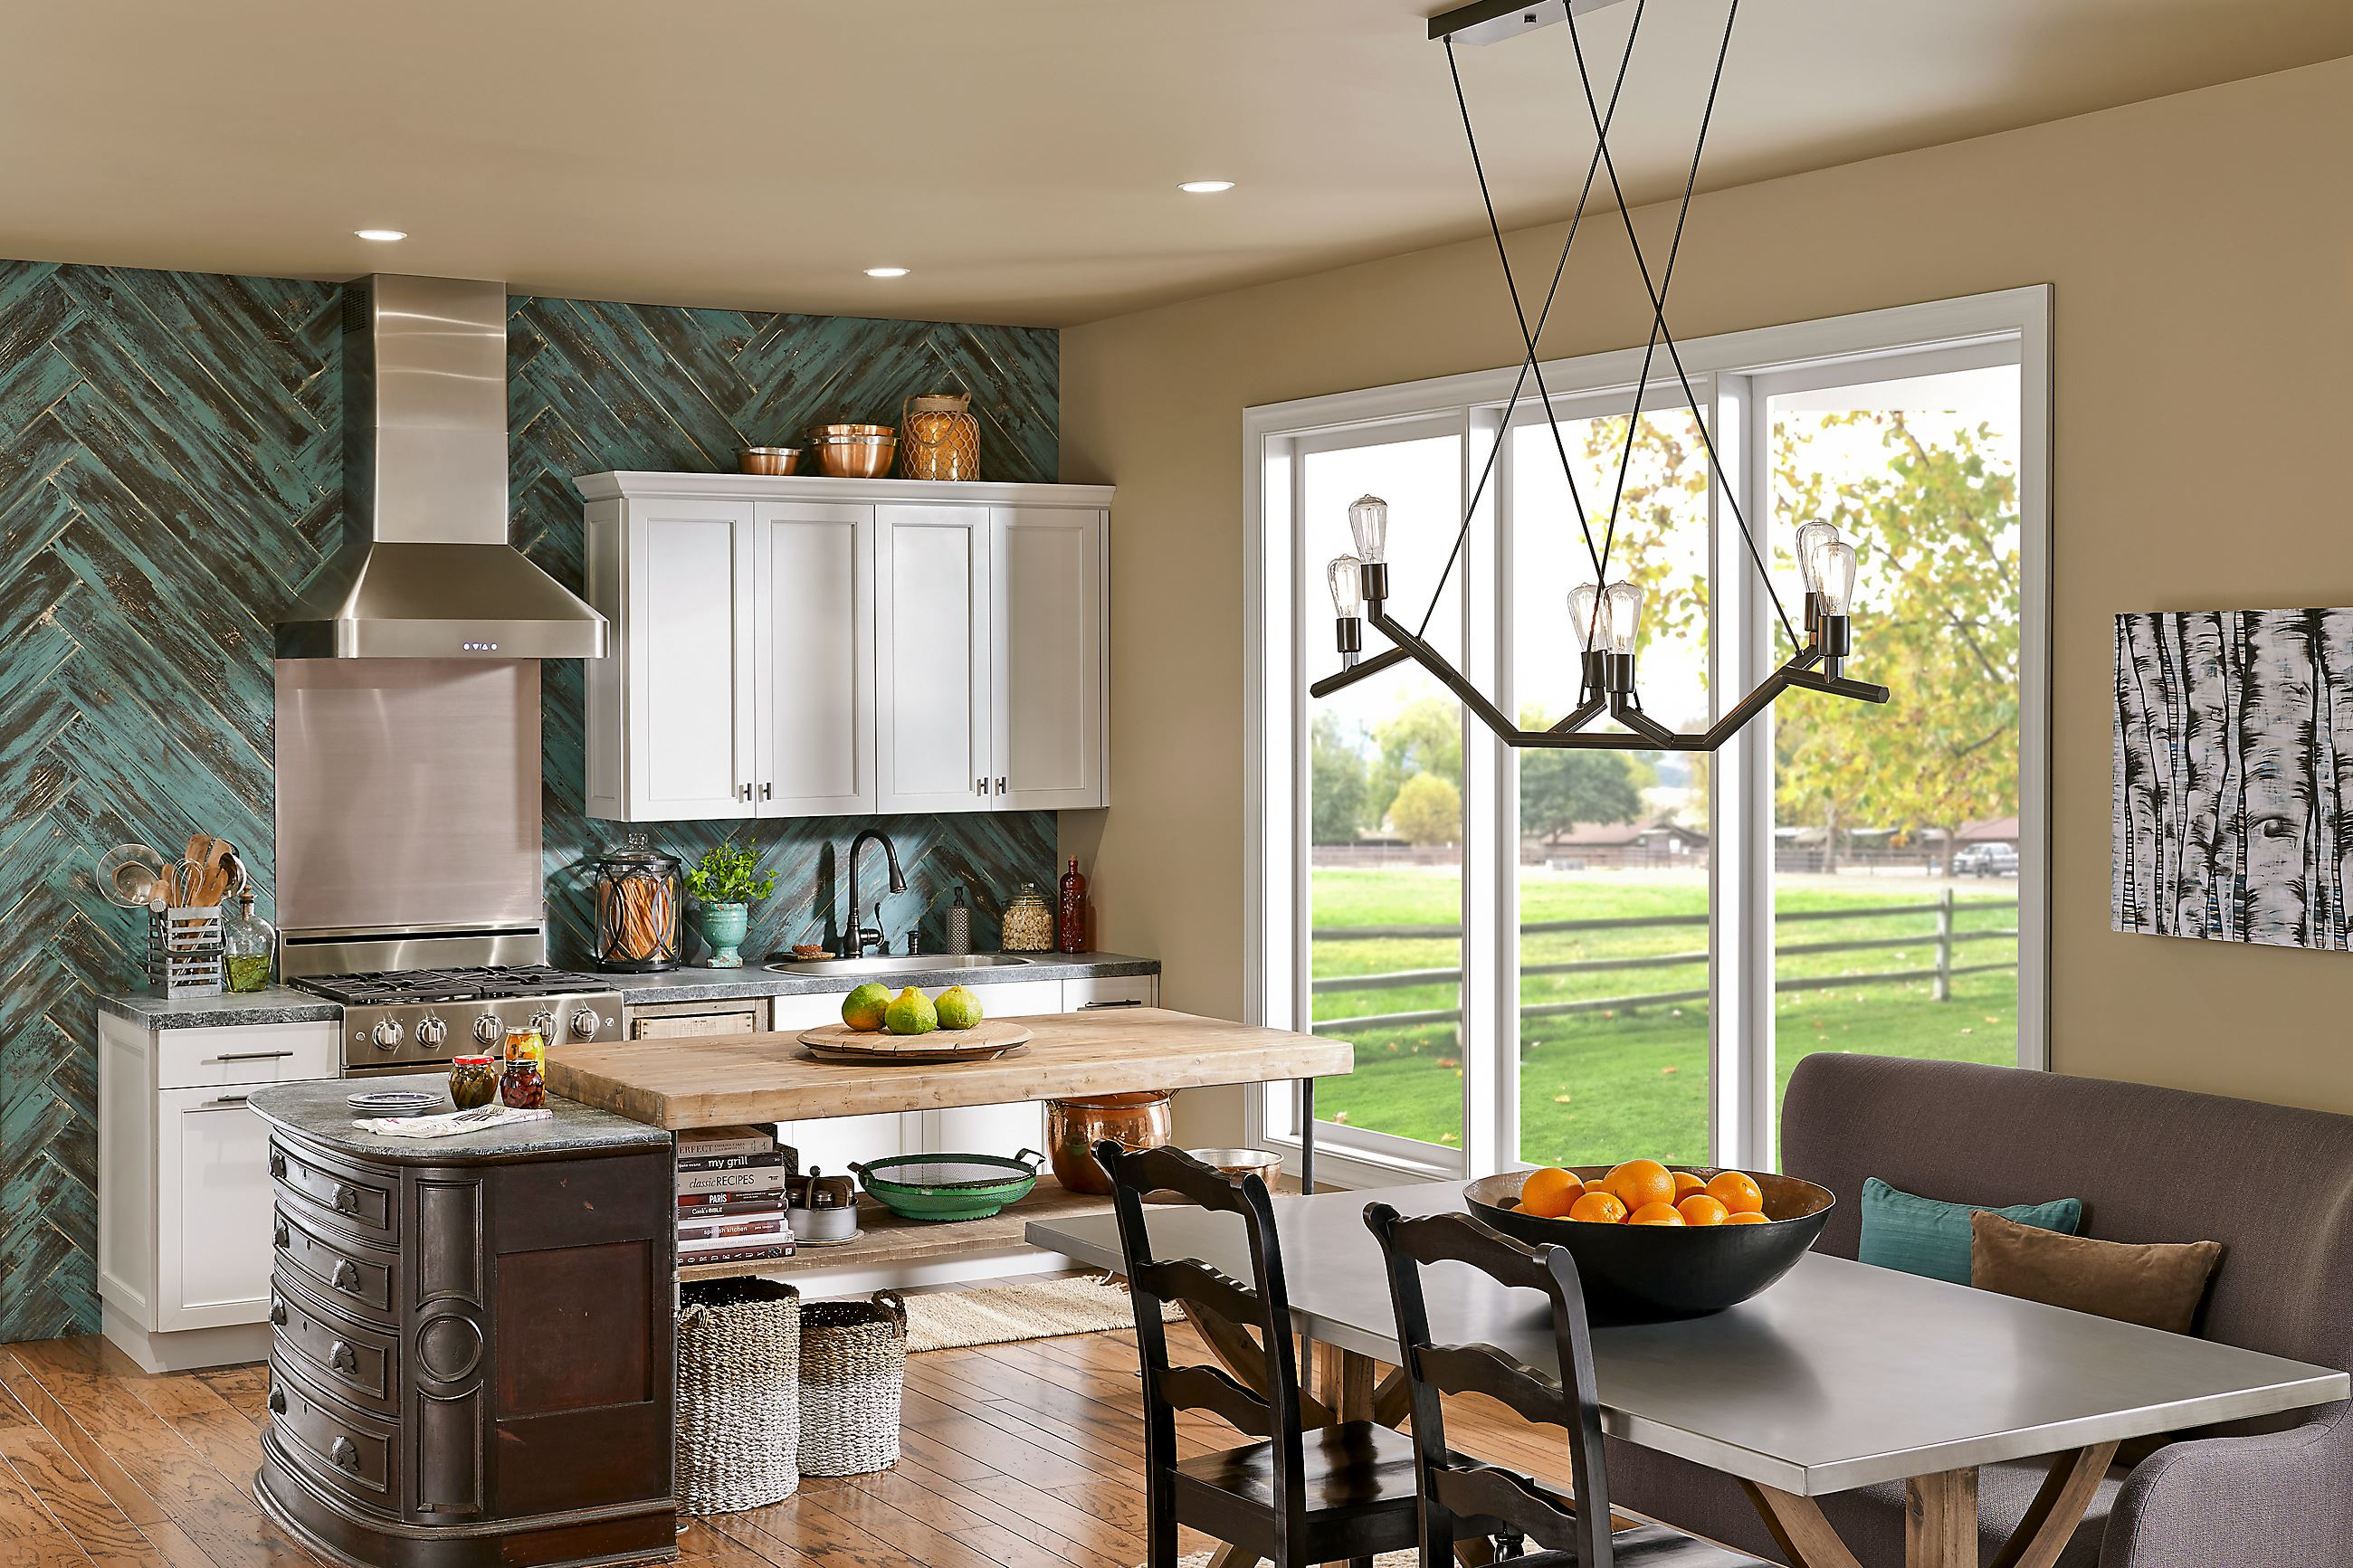 Applying 16 Bright Kitchen Paint Colors: The Color Forecast Is Bright For Interior Paints